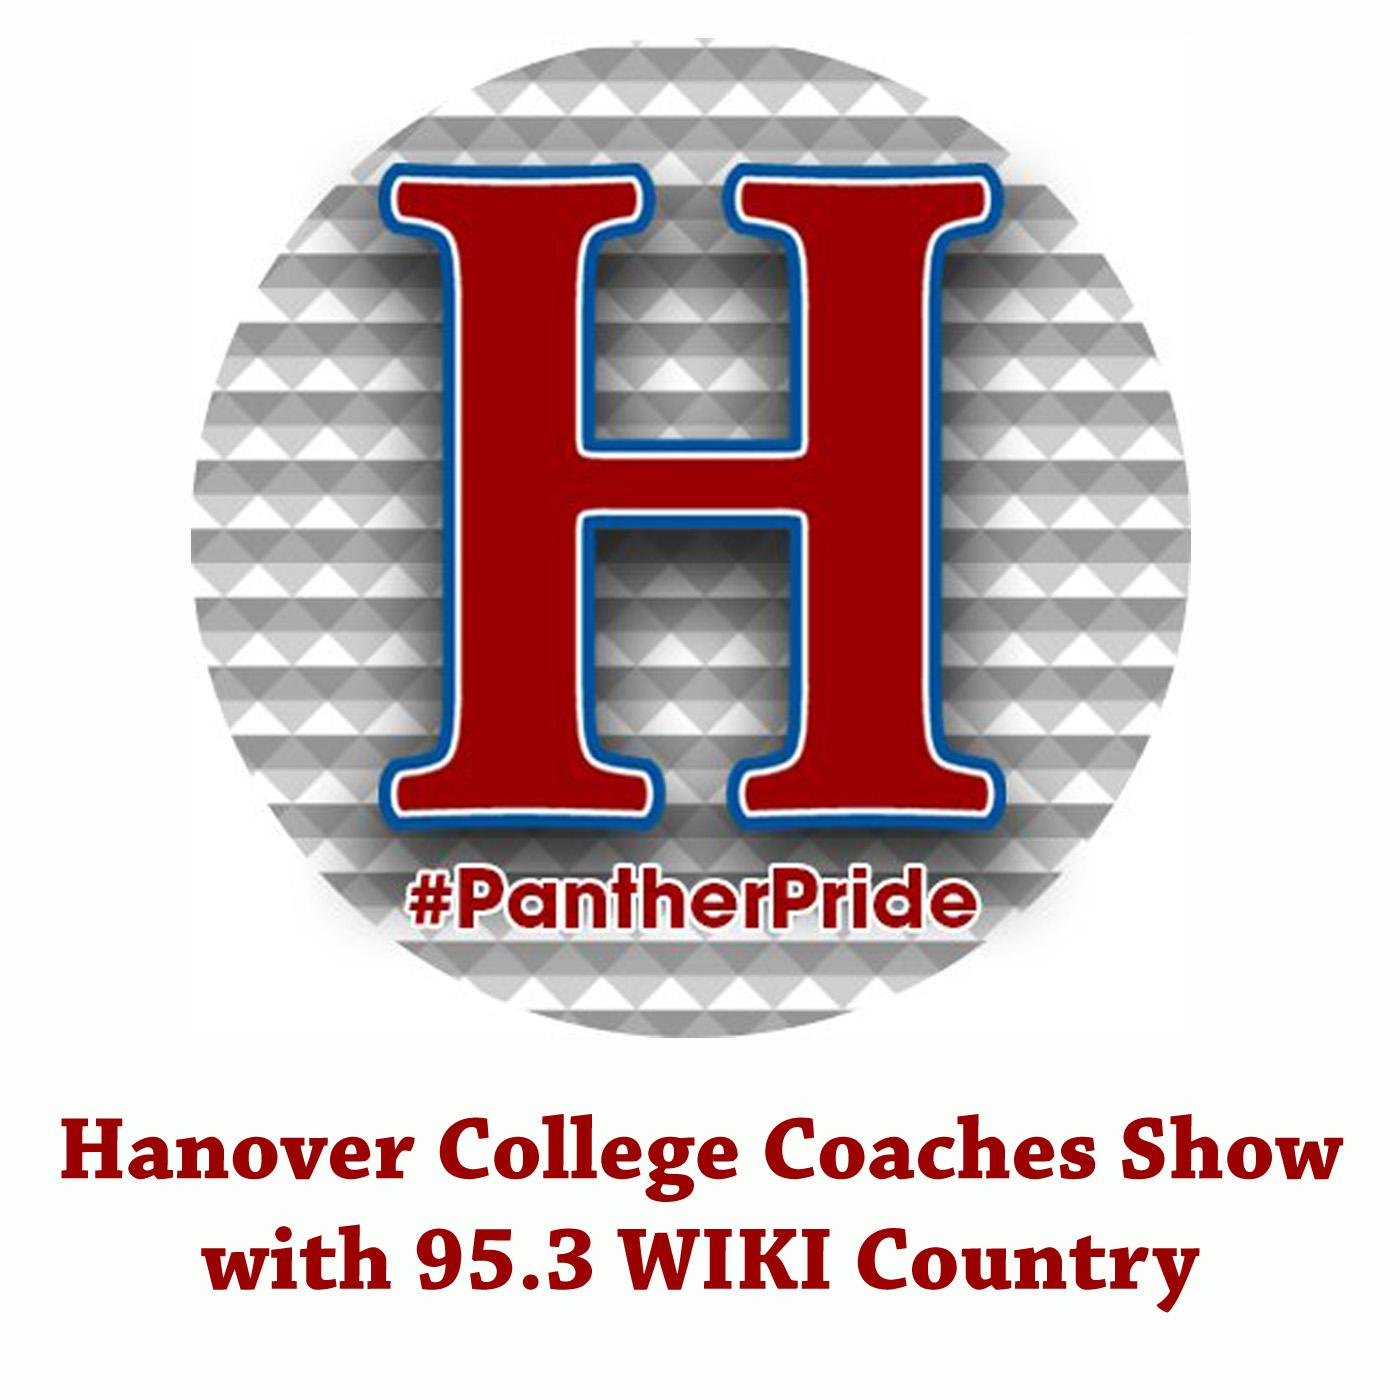 Hanover College Coaches Show